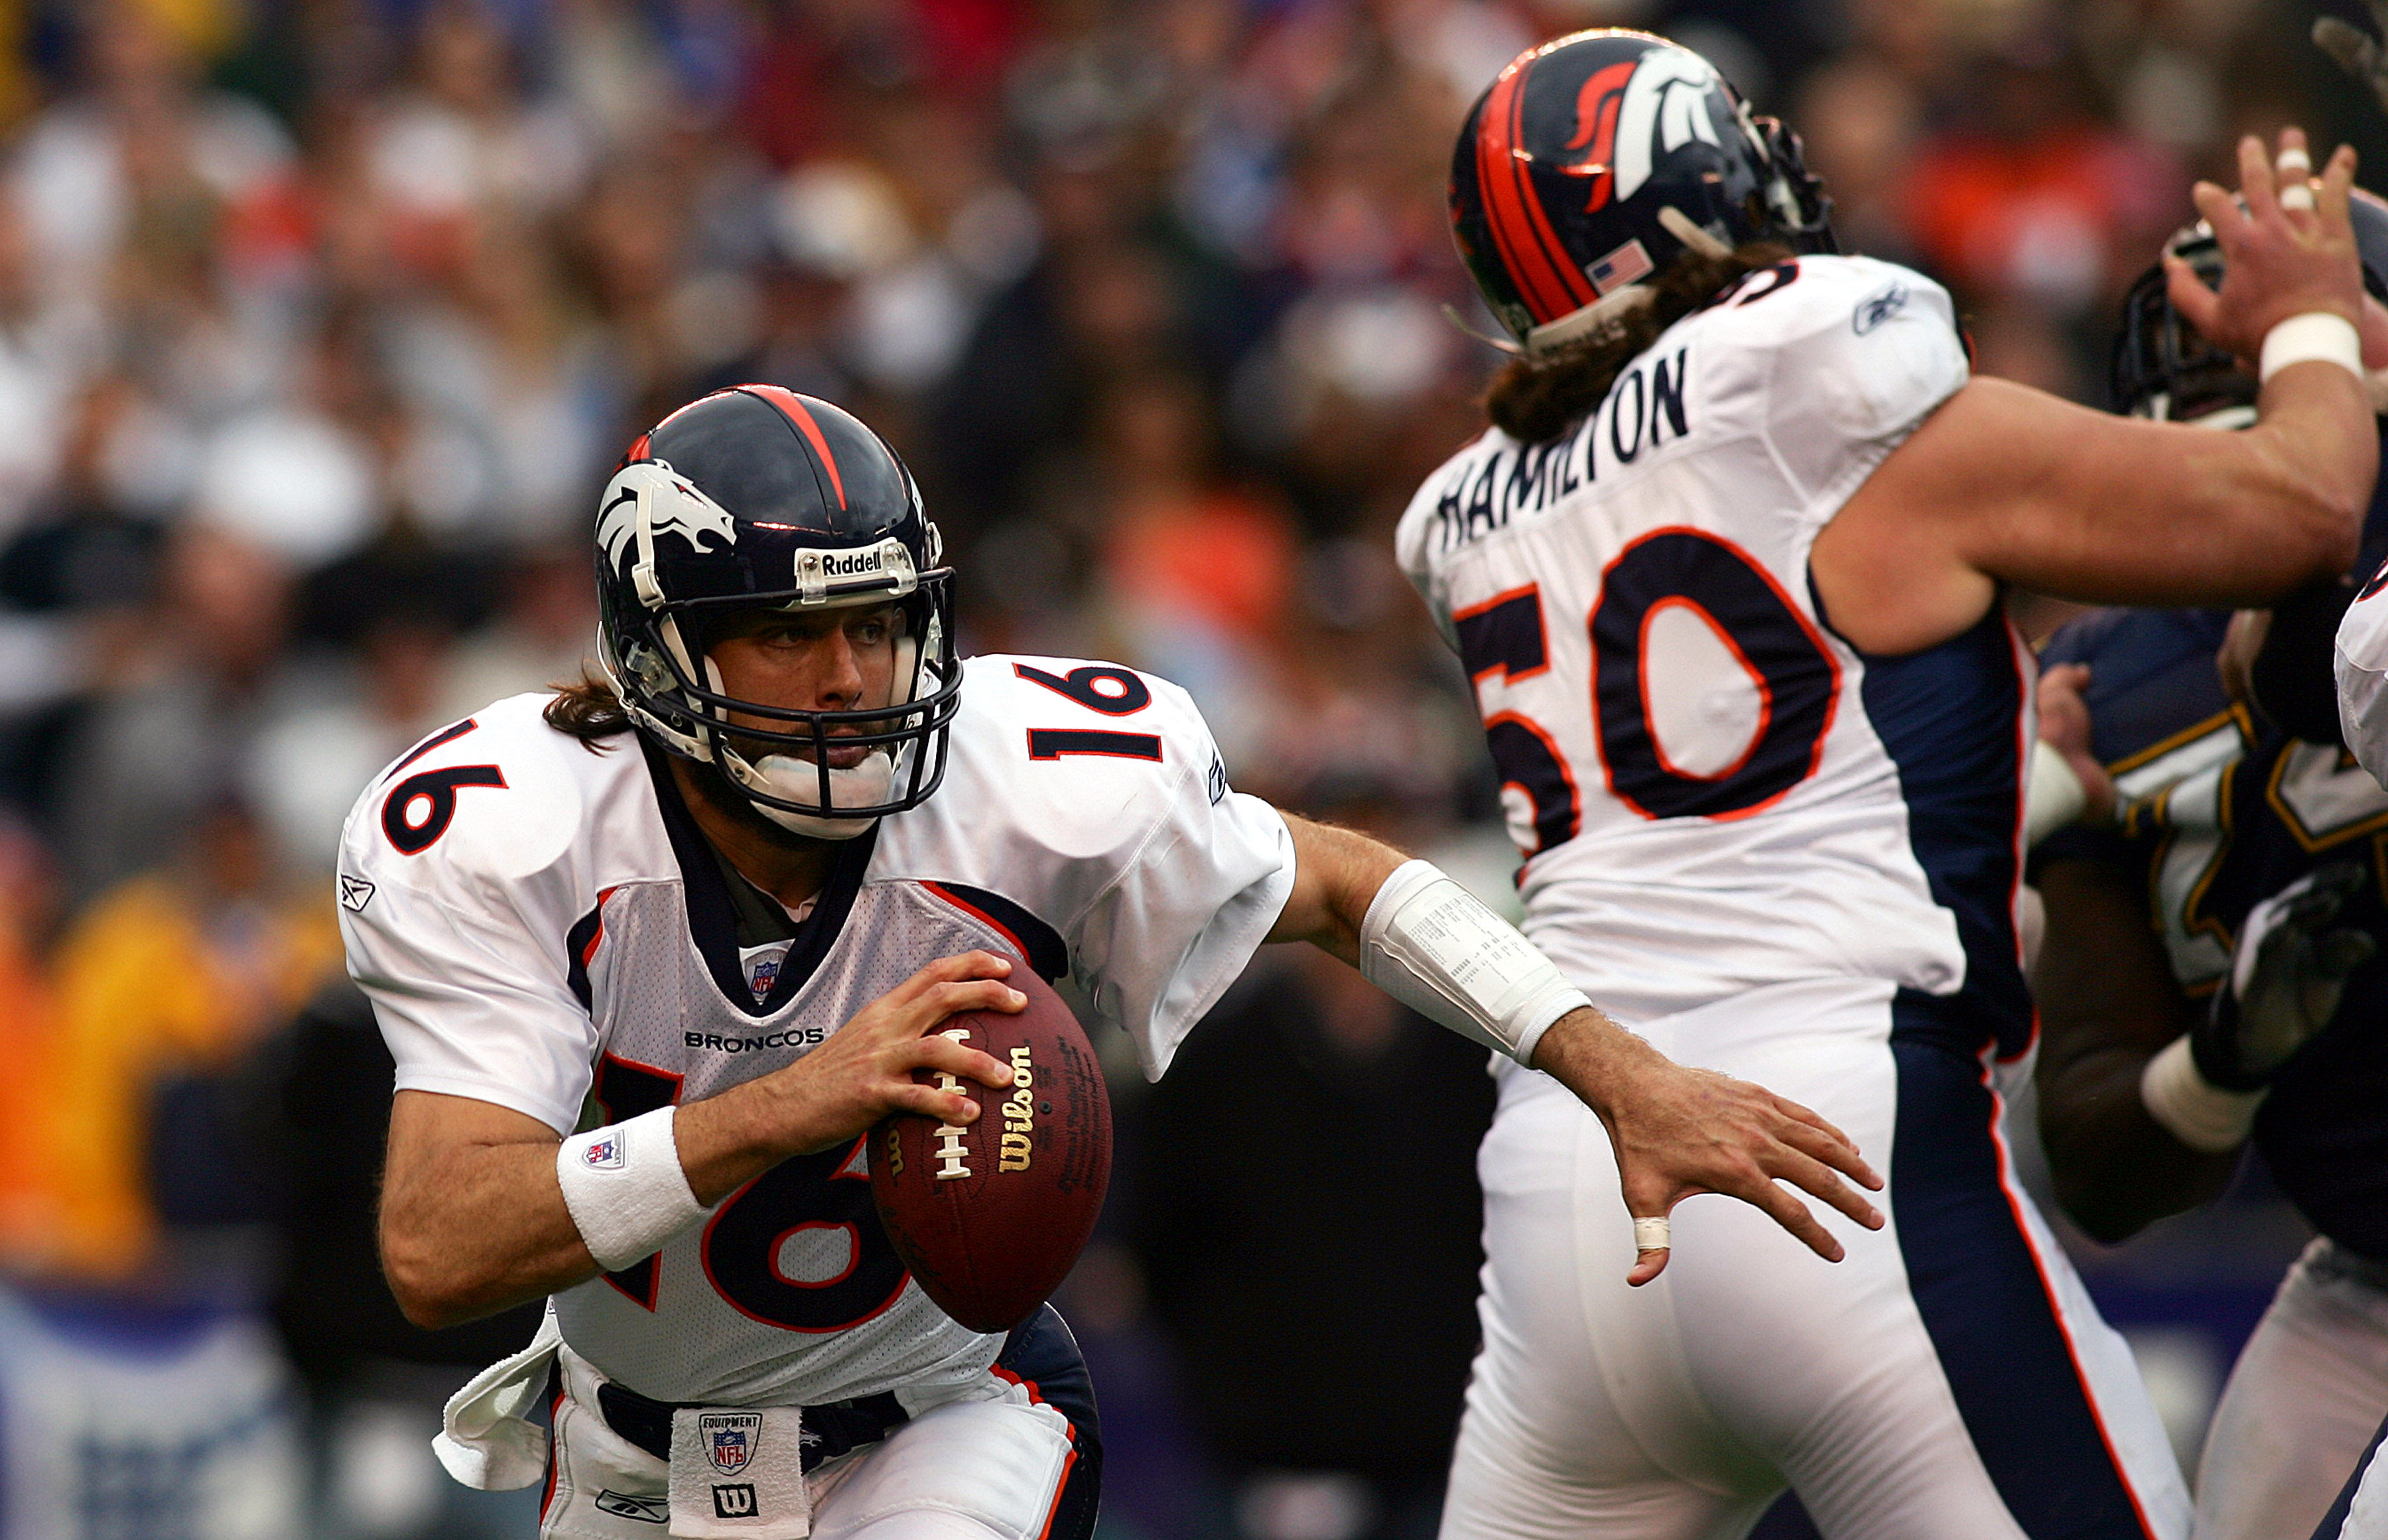 SAN DIEGO - DECEMBER 31:  Quarterback Jake Plummer #16 of the Denver Broncos scrambles against the San Diego Chargers during the 1st half of their NFL Game on December 31, 2005 at Qualcomm Stadium in San Diego, California. (Photo by Donald Miralle/Getty I